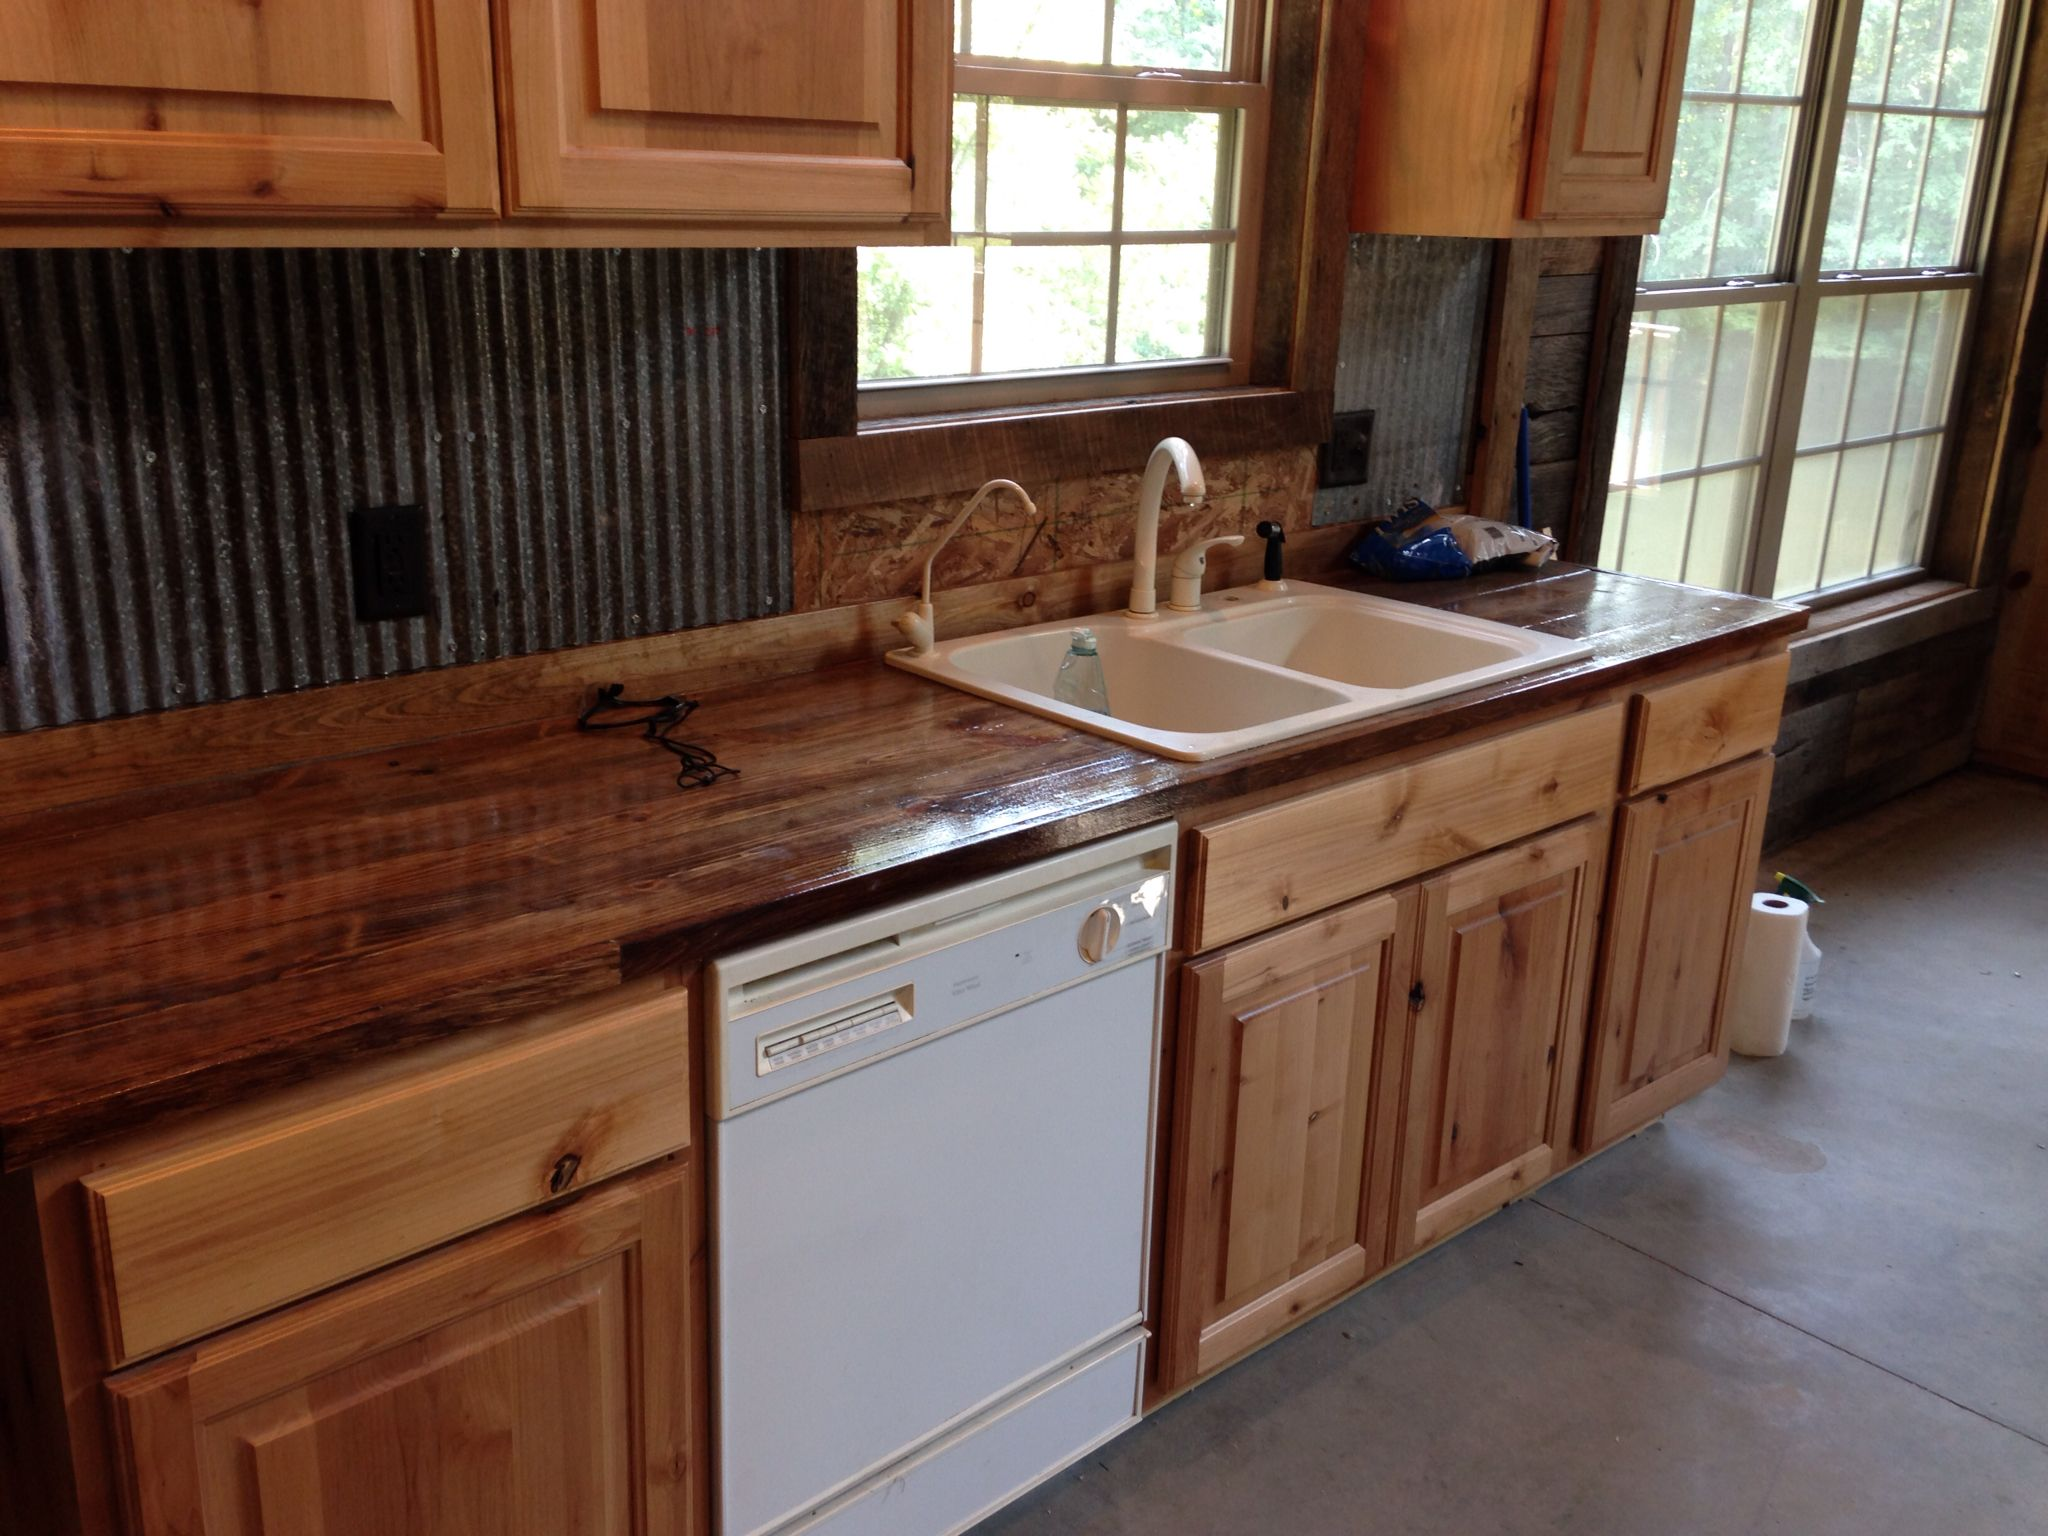 Southern Yellow Pine Distressed Countertops Southern Yellow Pine Countertops Cabin